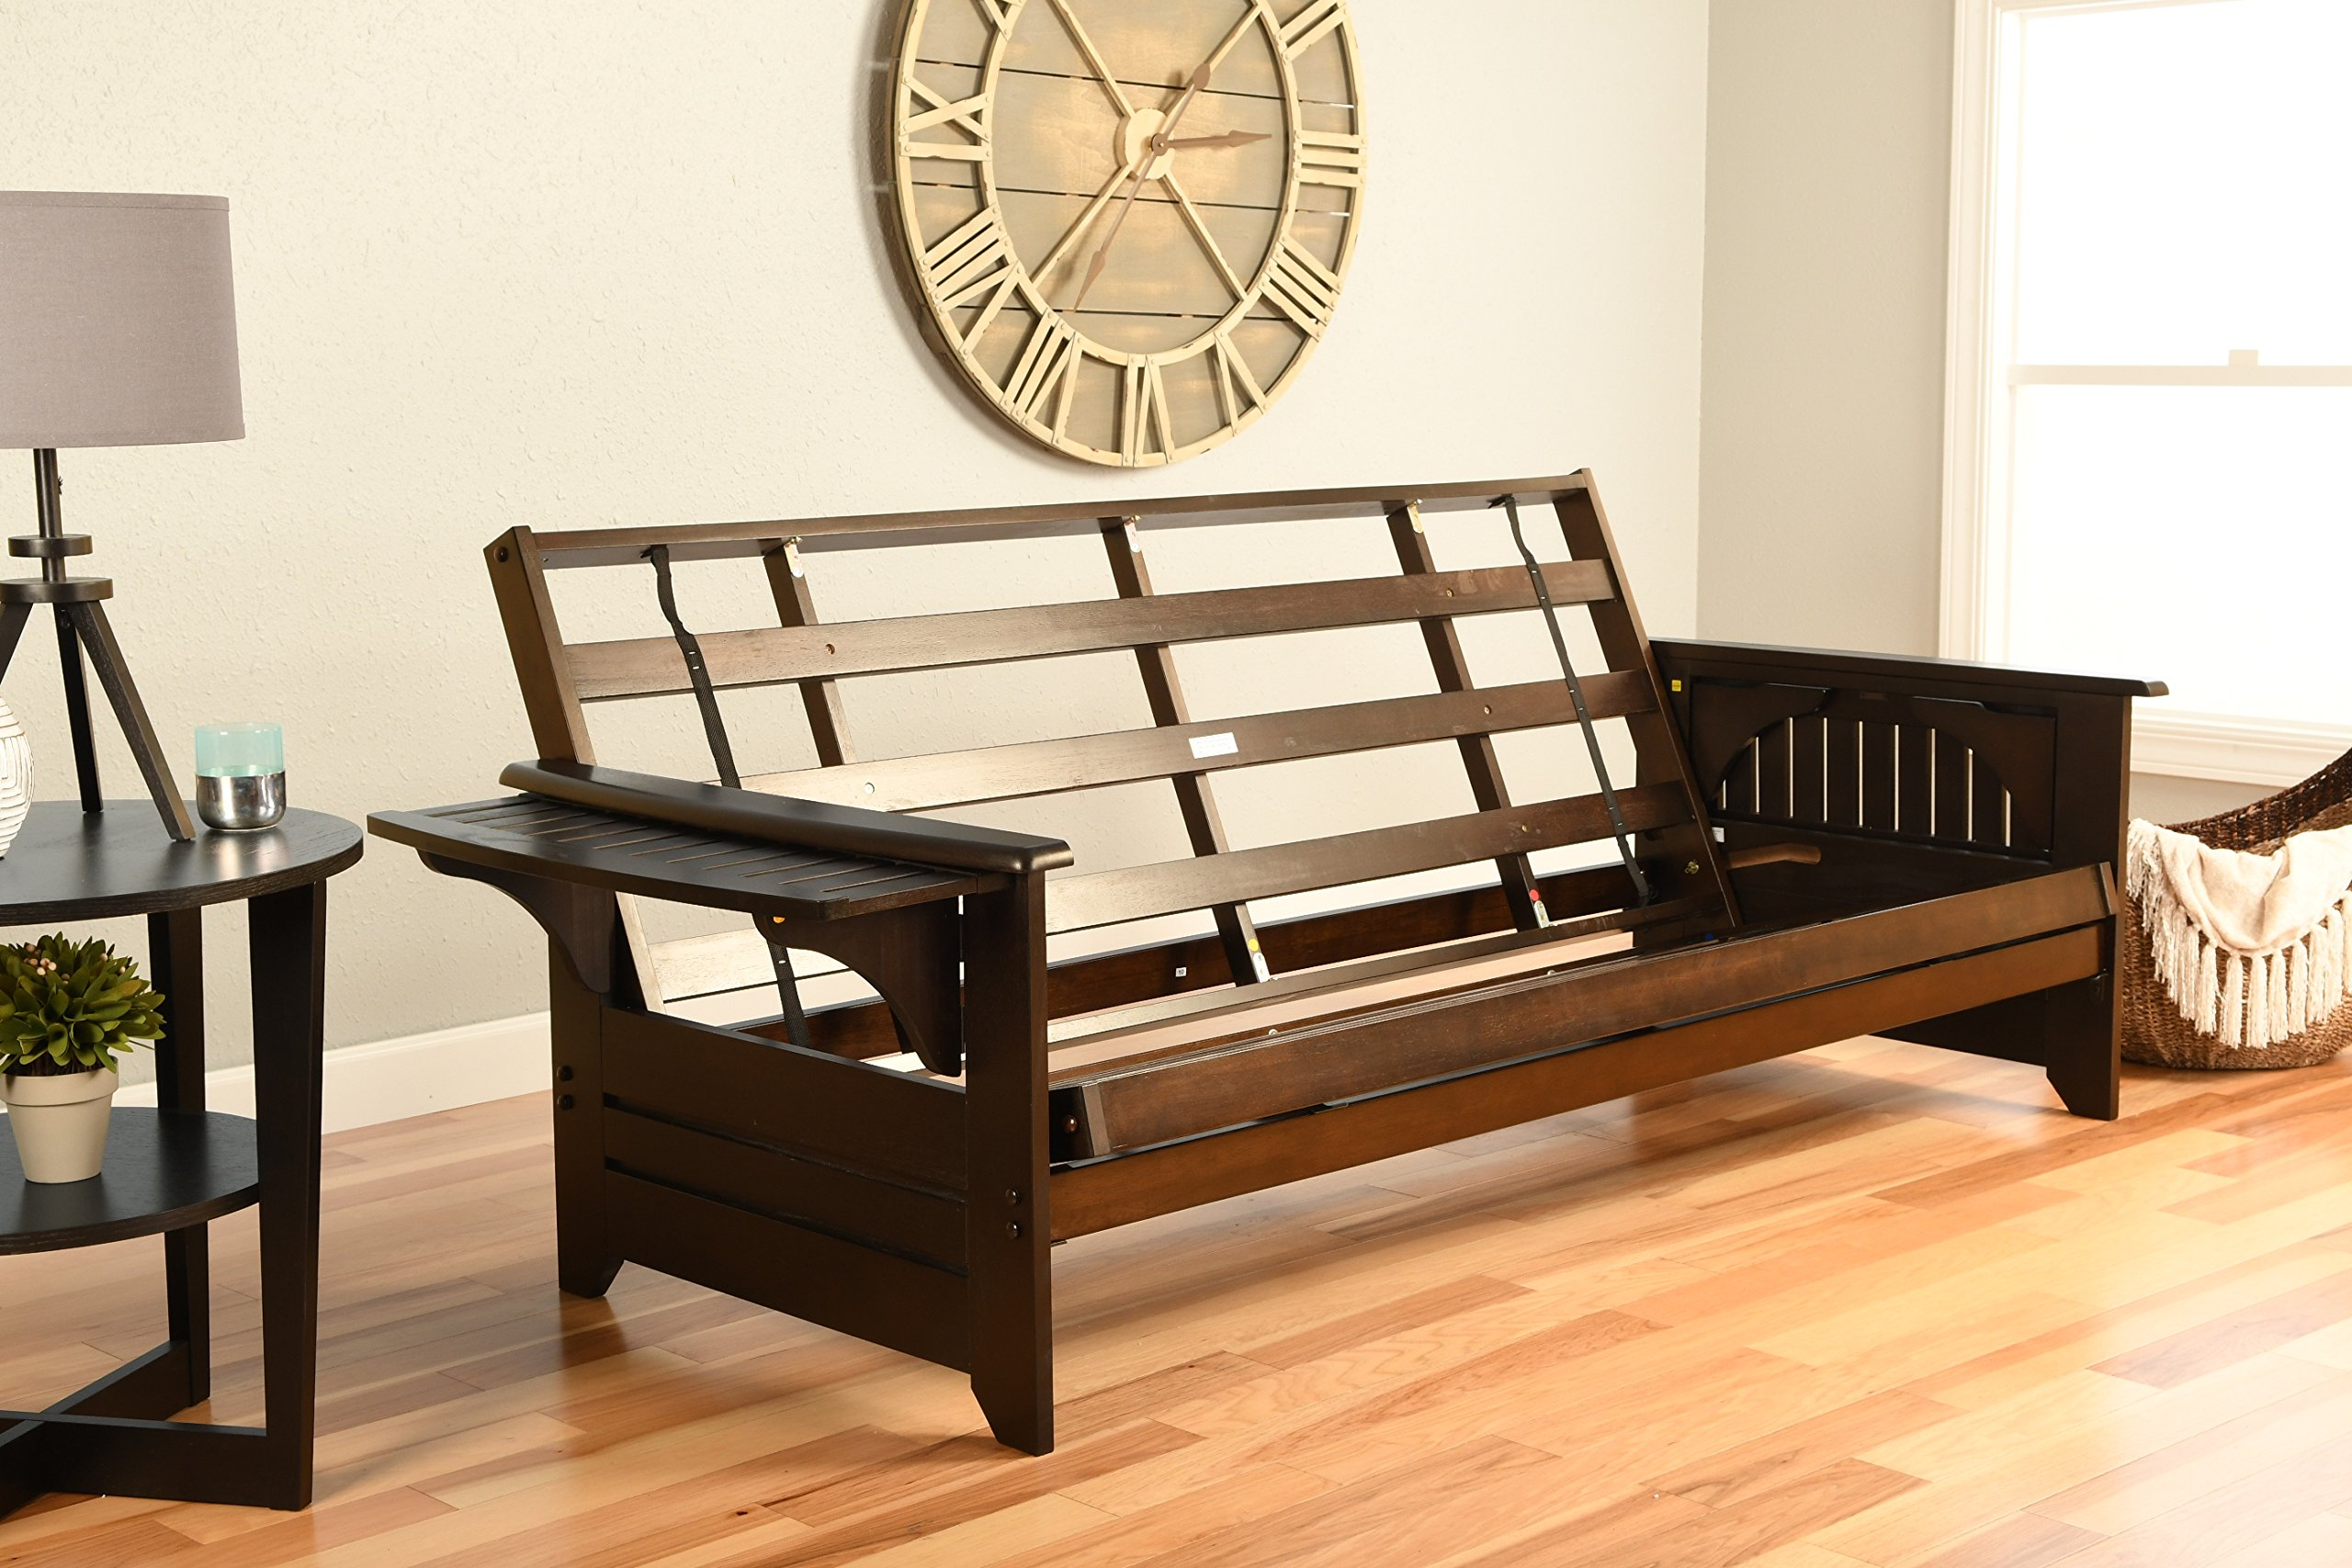 Phoenix Futon Sofa Frame in Espresso Finish by Kodiak Futons